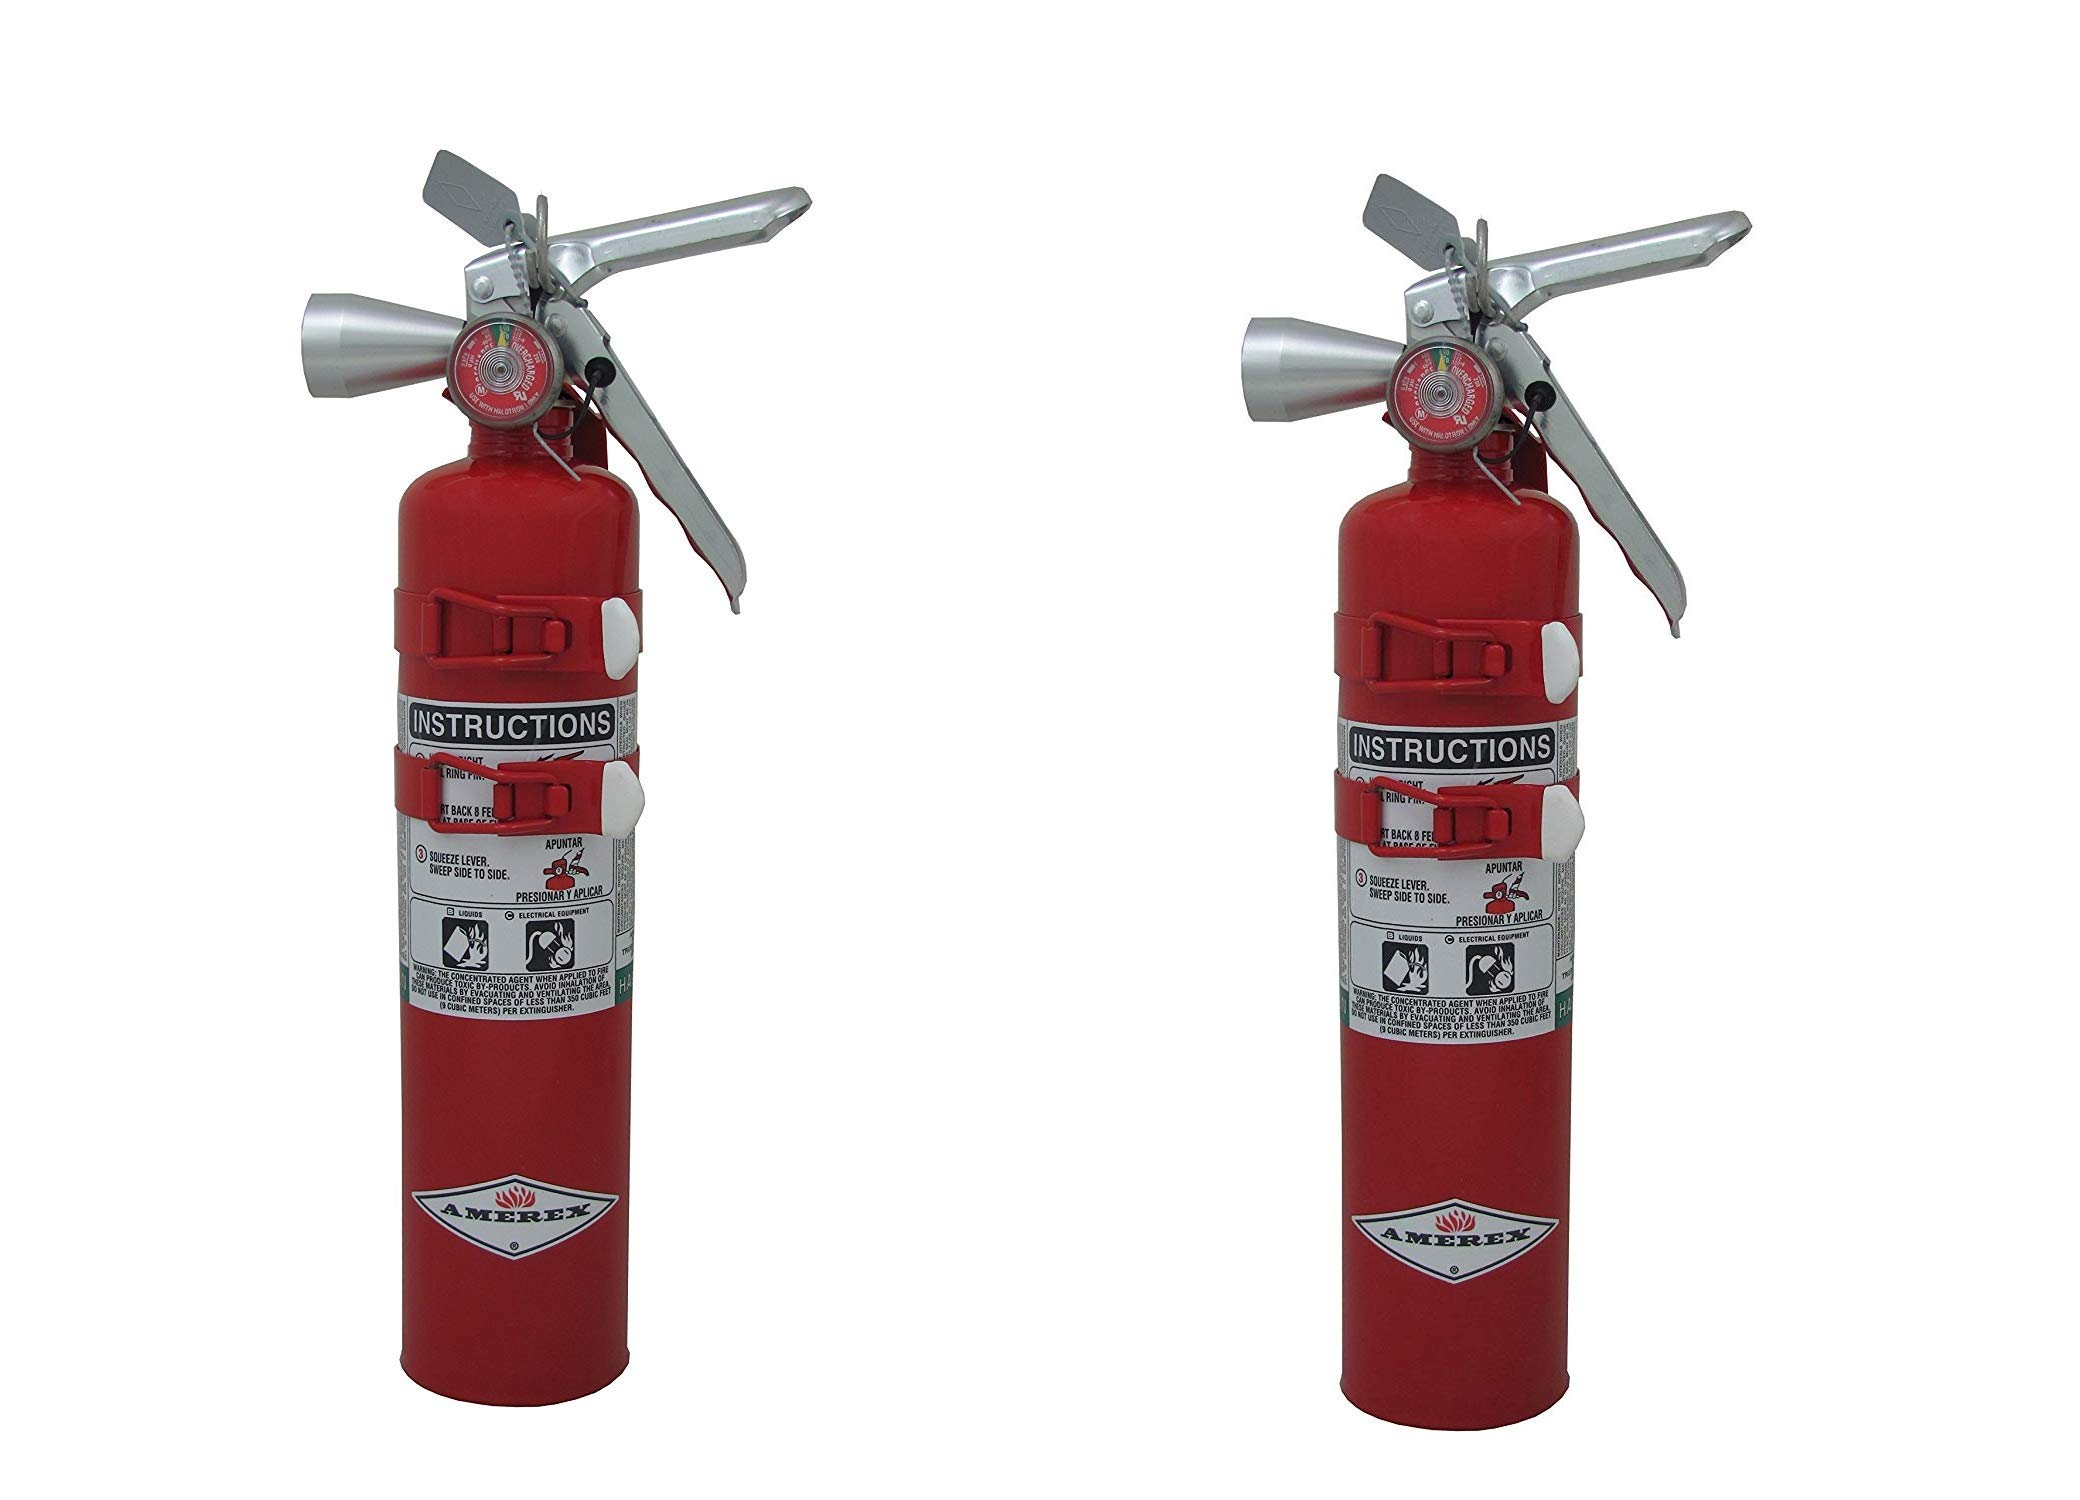 Amerex TYF B385TS, 2.5lb Halotron I Class B C Fire Extinguisher Pack of 2 by Amerex